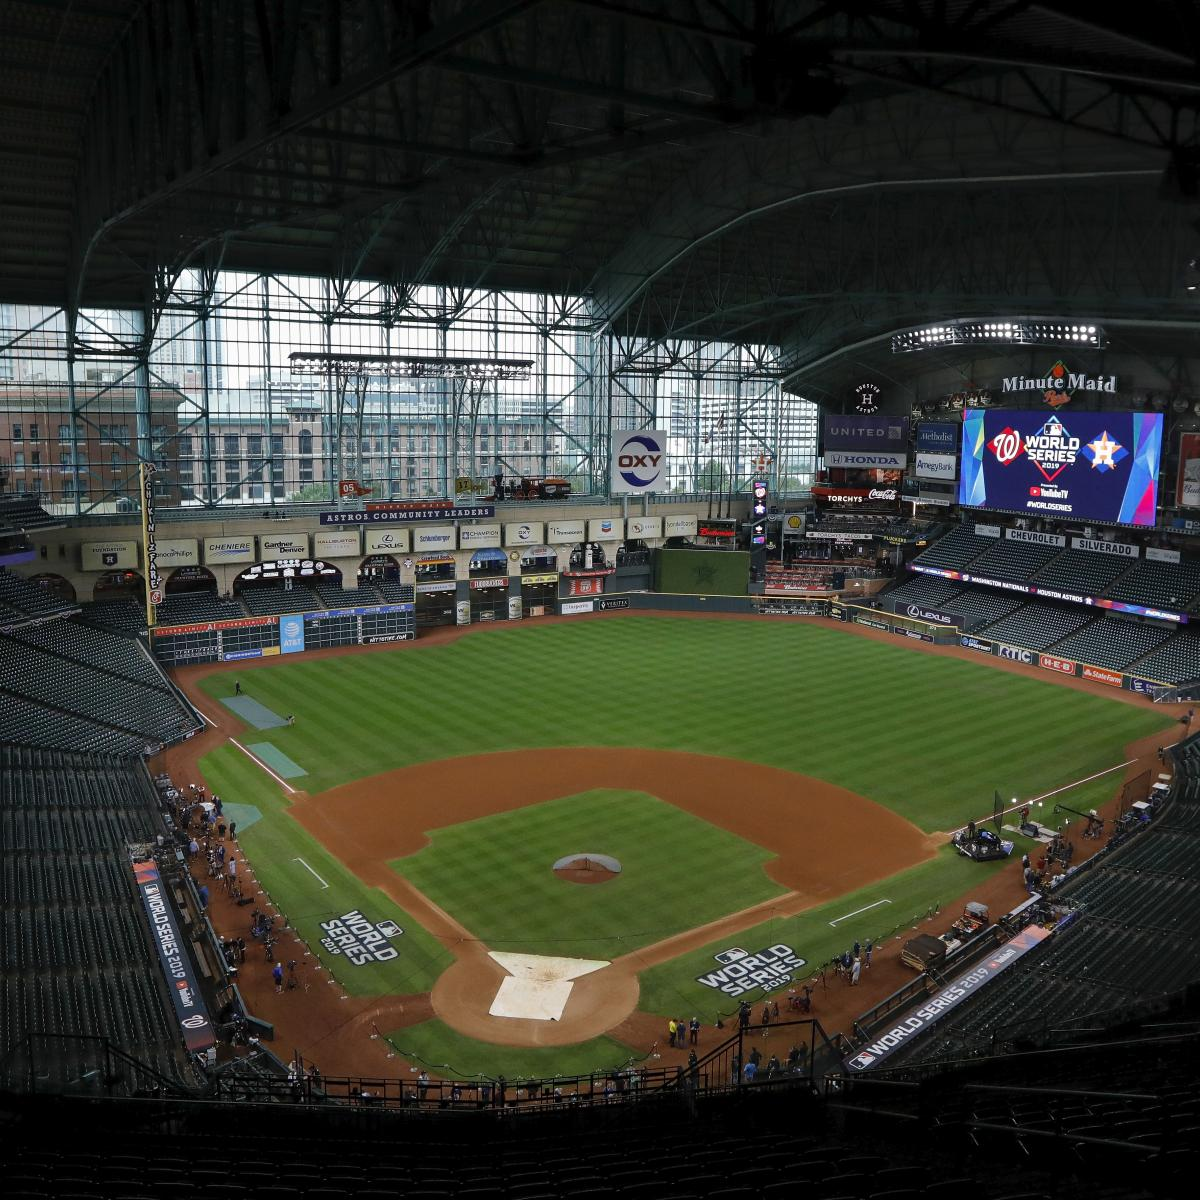 Report: Kevin Goldstein Named as Astros Exec Who Suggested Use of Cameras